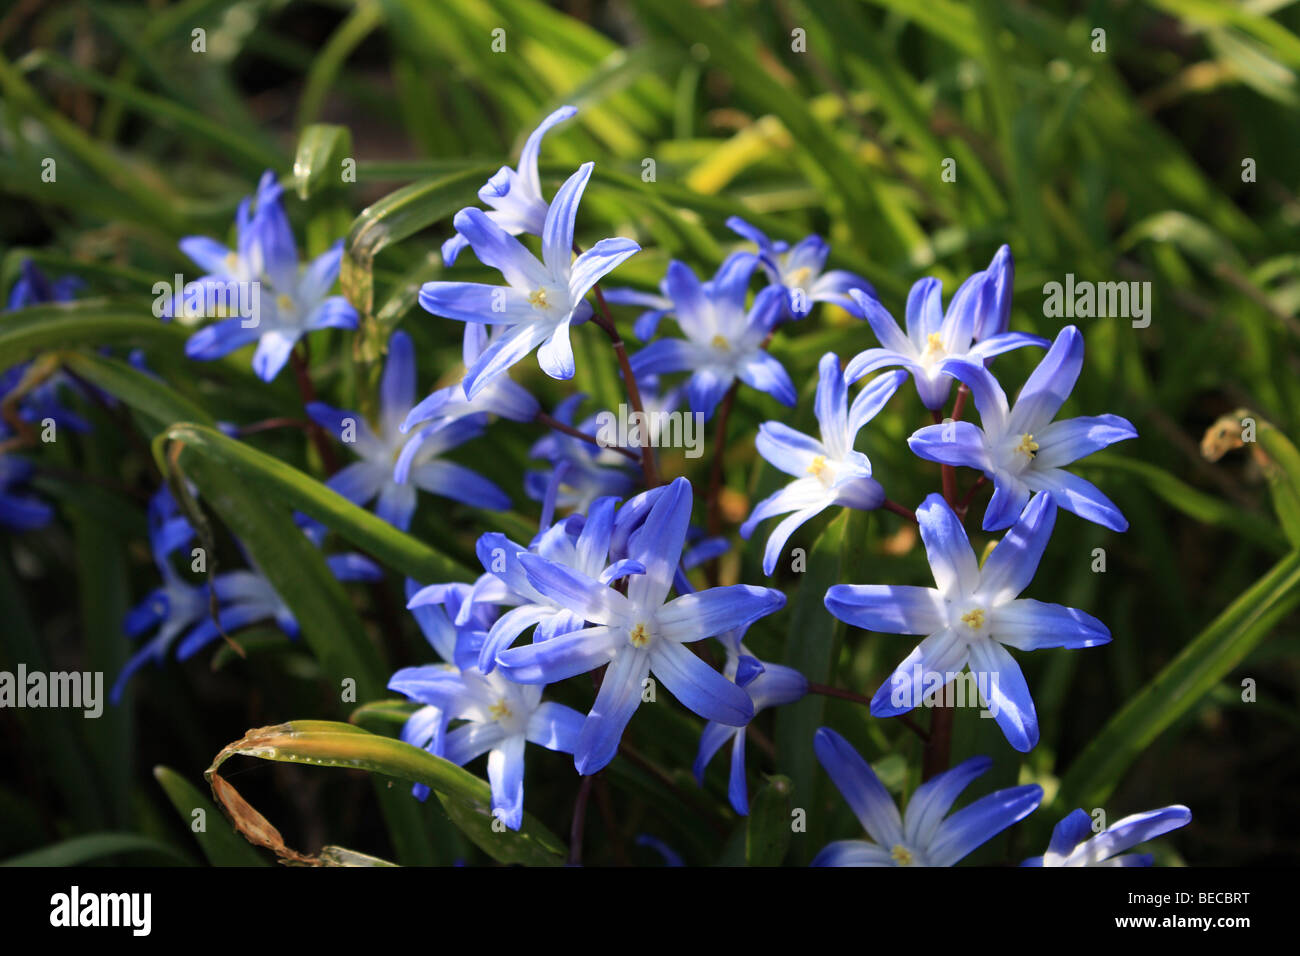 The vivid blue flowers of chionodoxa luciliae or glory of the stock photo the vivid blue flowers of chionodoxa luciliae or glory of the snow a spring flowering bulb sussex england uk dhlflorist Choice Image